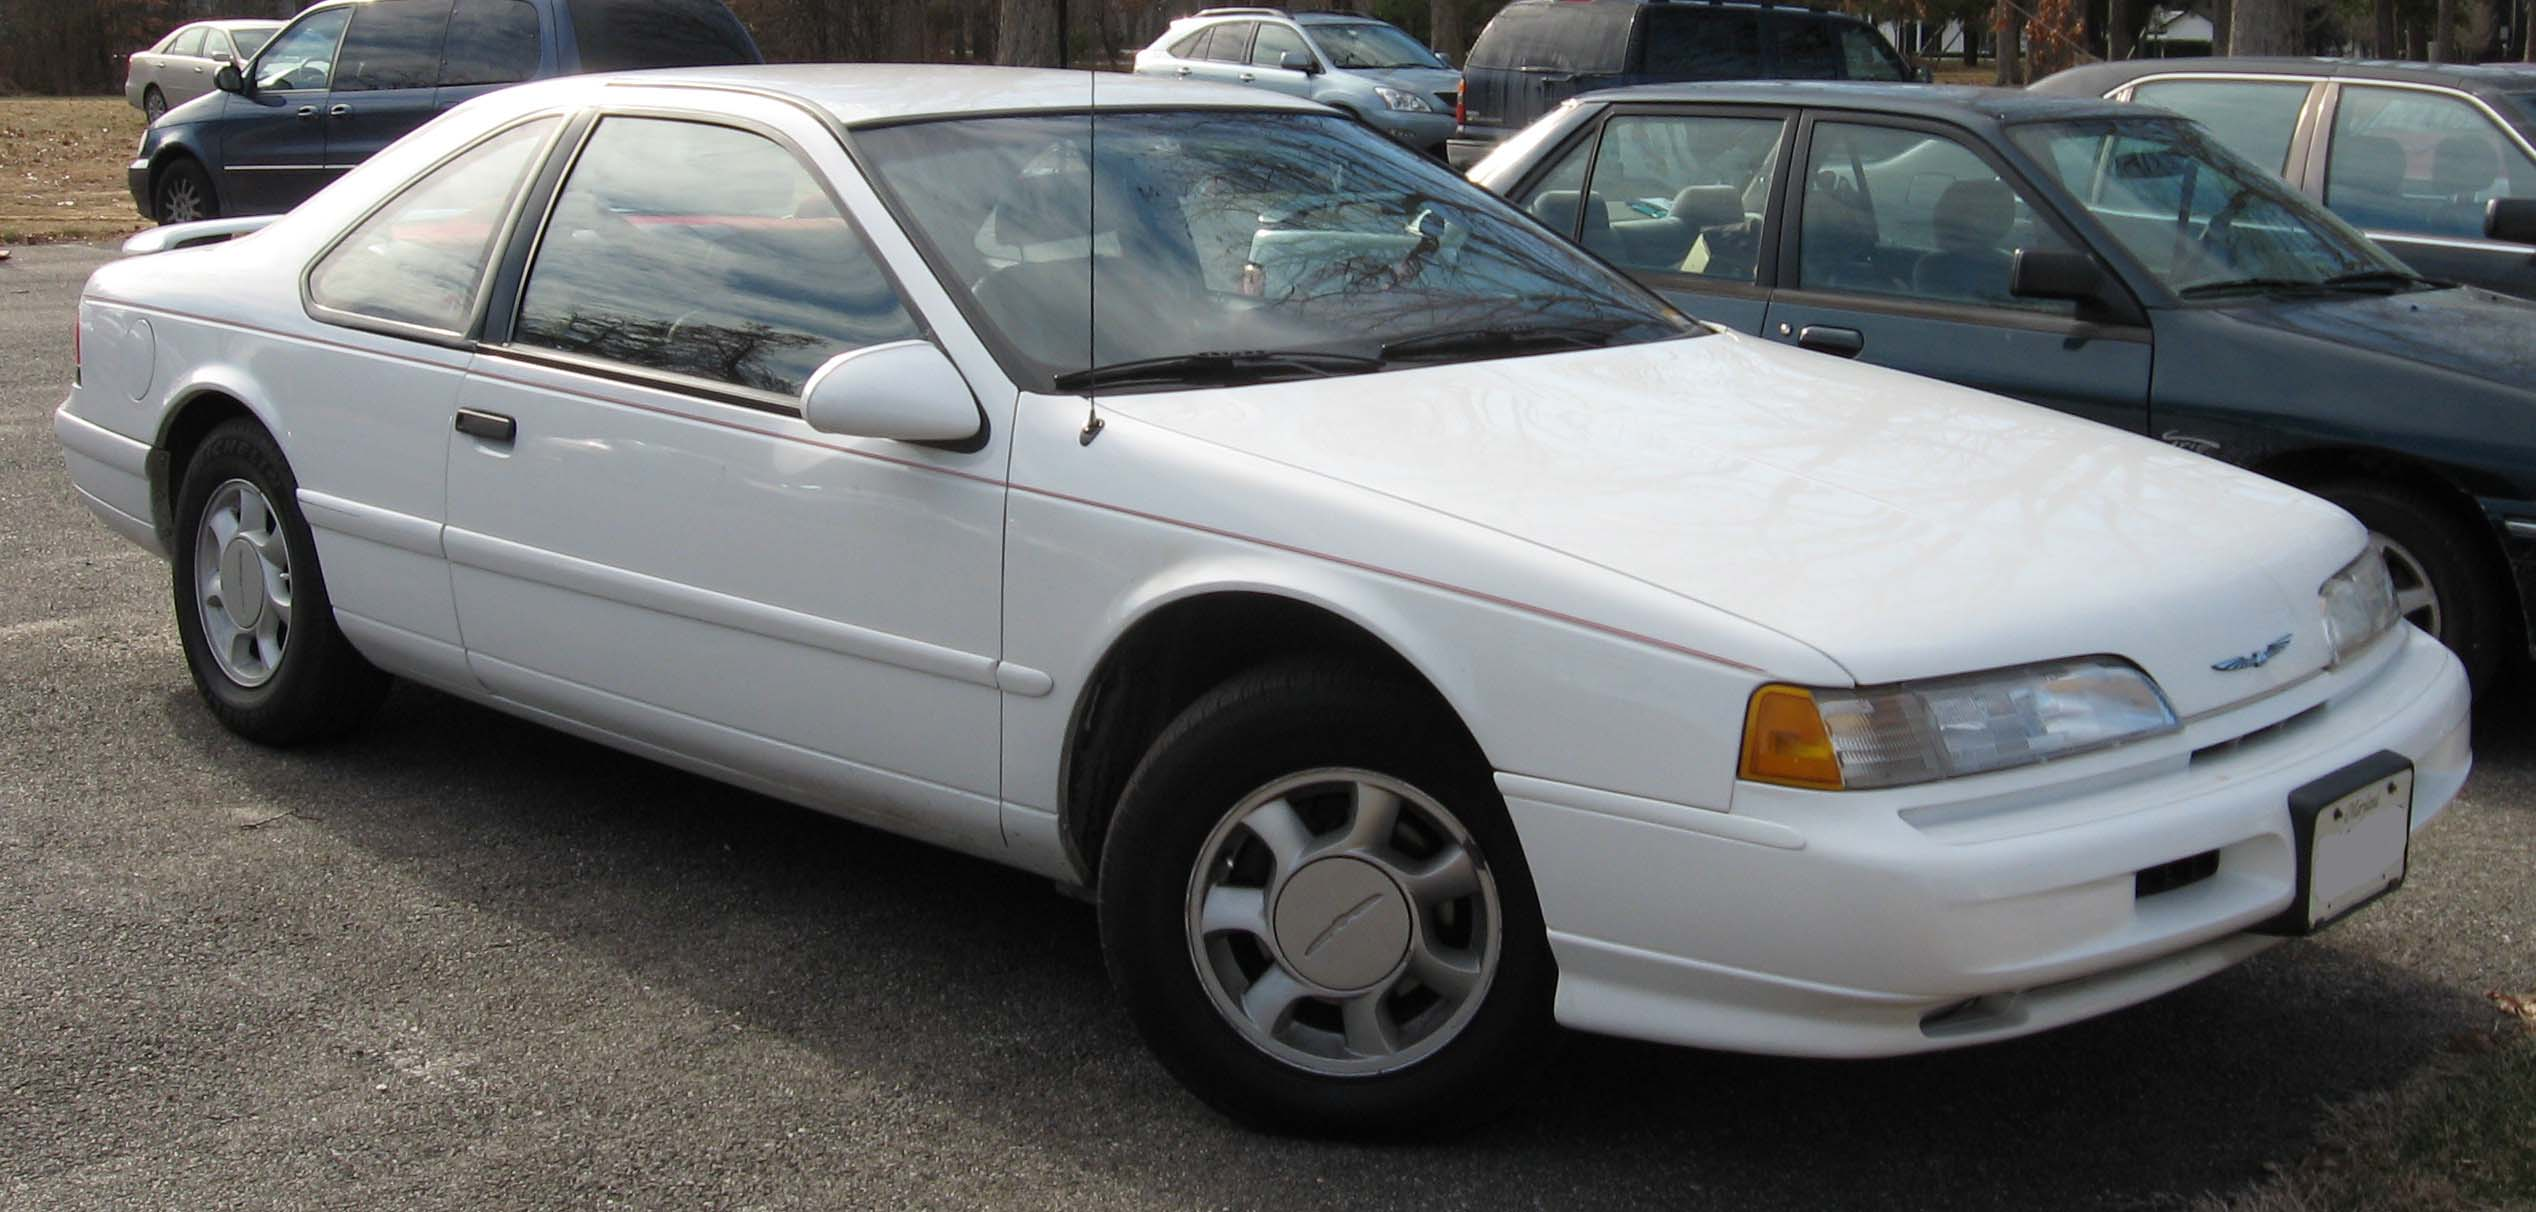 Ford Thunderbird 1989 Photo - 1